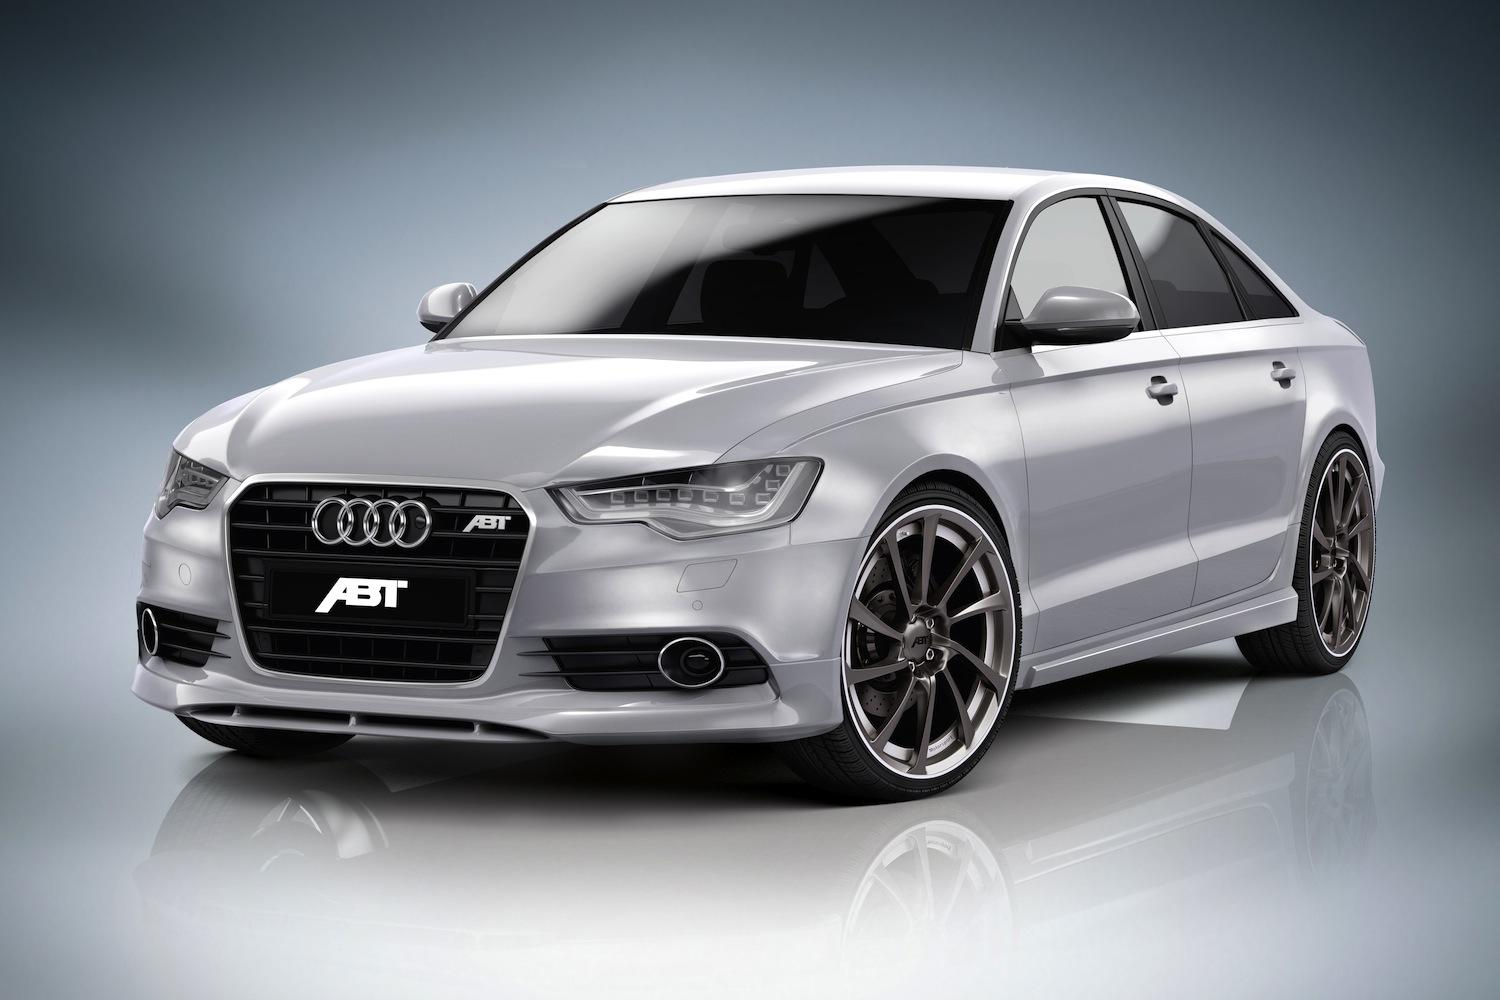 audi a6 tdi transformed into the abt as6 for sema 2013 digital trends. Black Bedroom Furniture Sets. Home Design Ideas